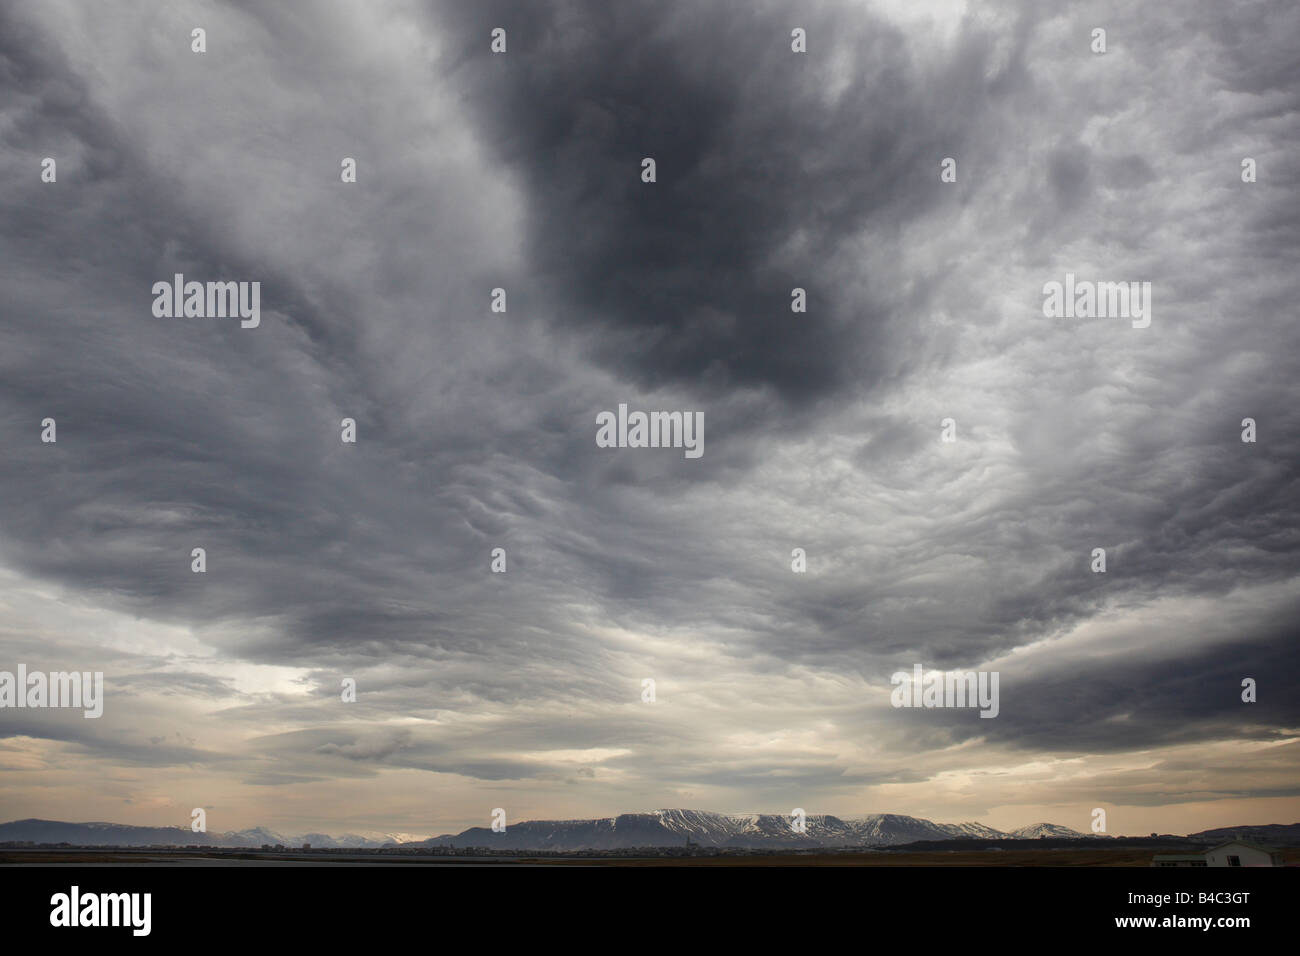 Overcast Sky with Mountains, Eastern Iceland - Stock Image